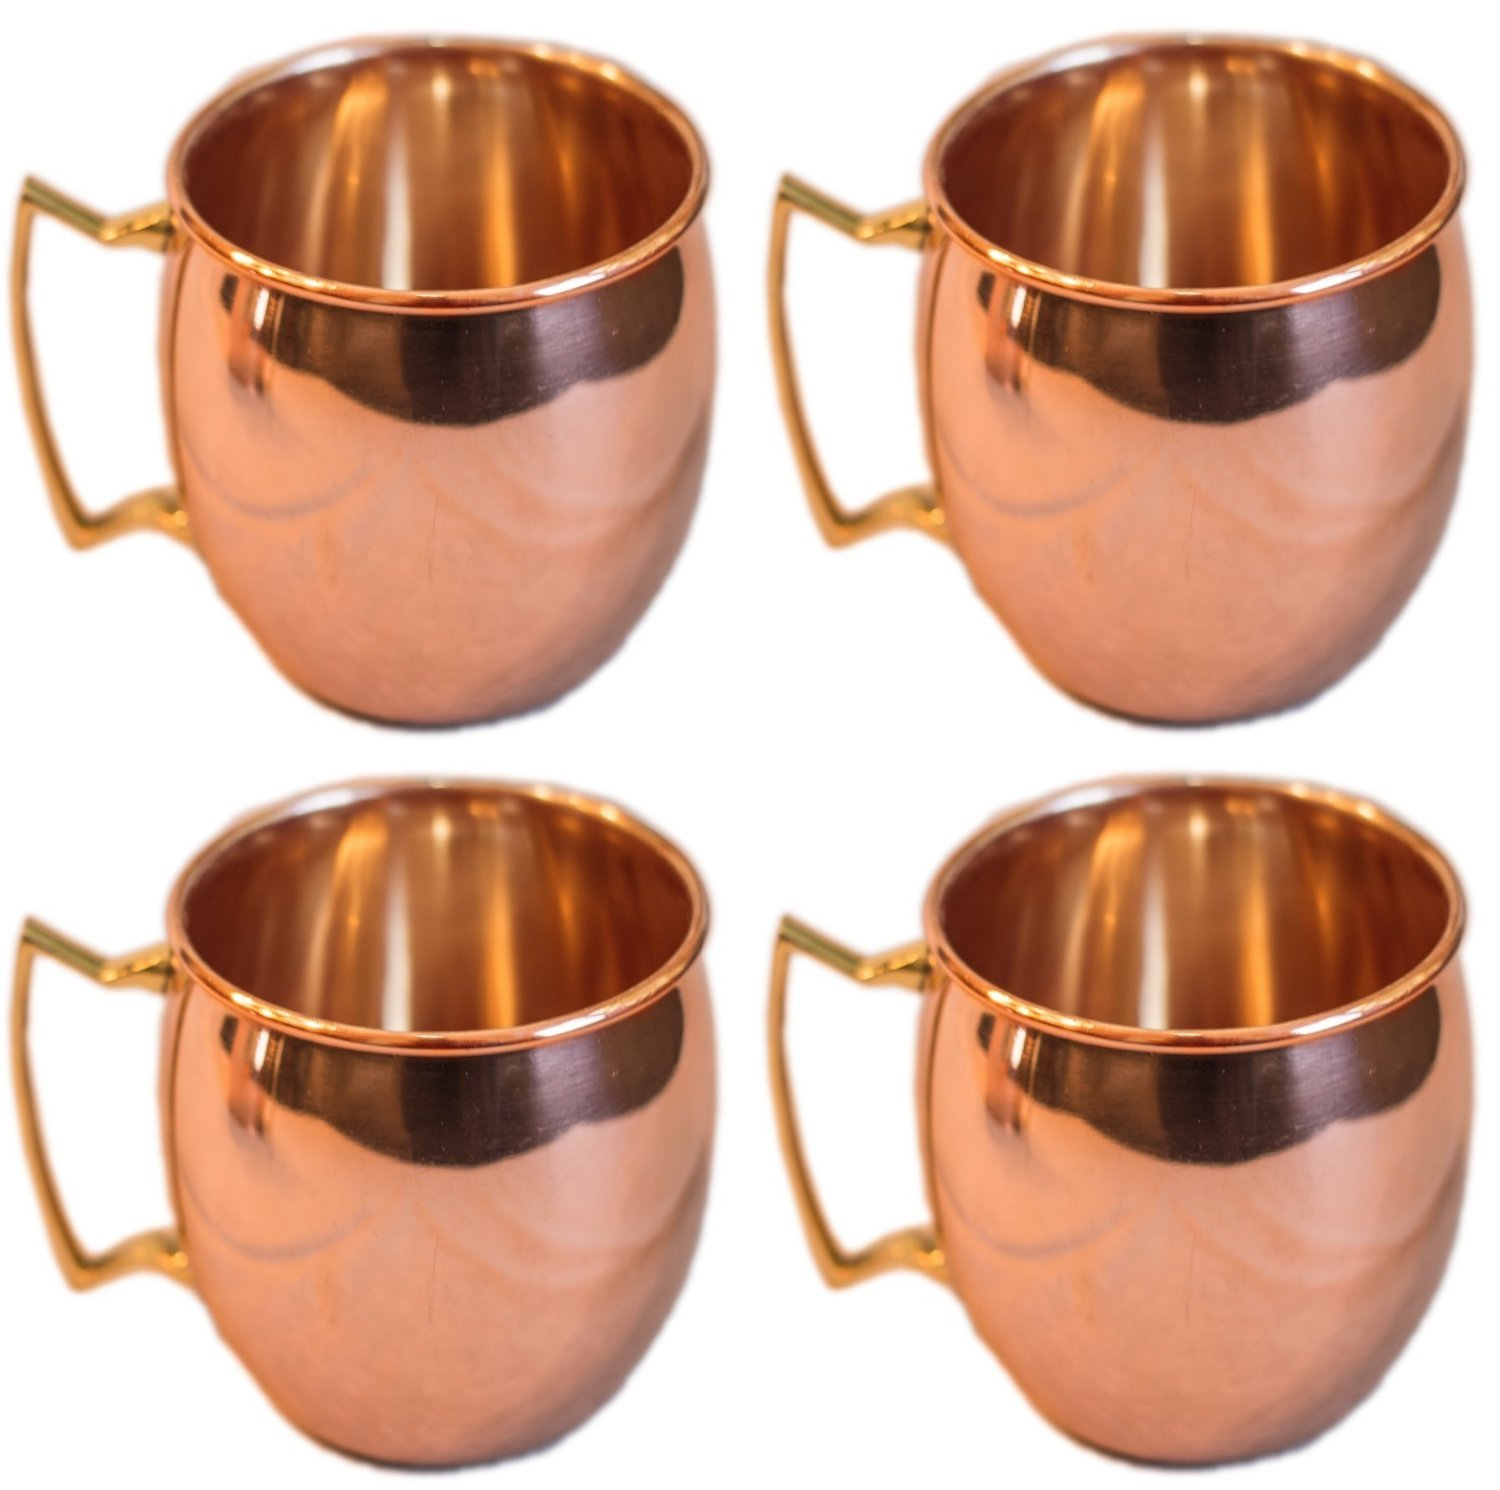 Moscow Mule 100 % Solid Pure Copper Mugs/Cups - Set of 4(16-ounce/Set of 4, Smooth) by galaxy hub Martsindia